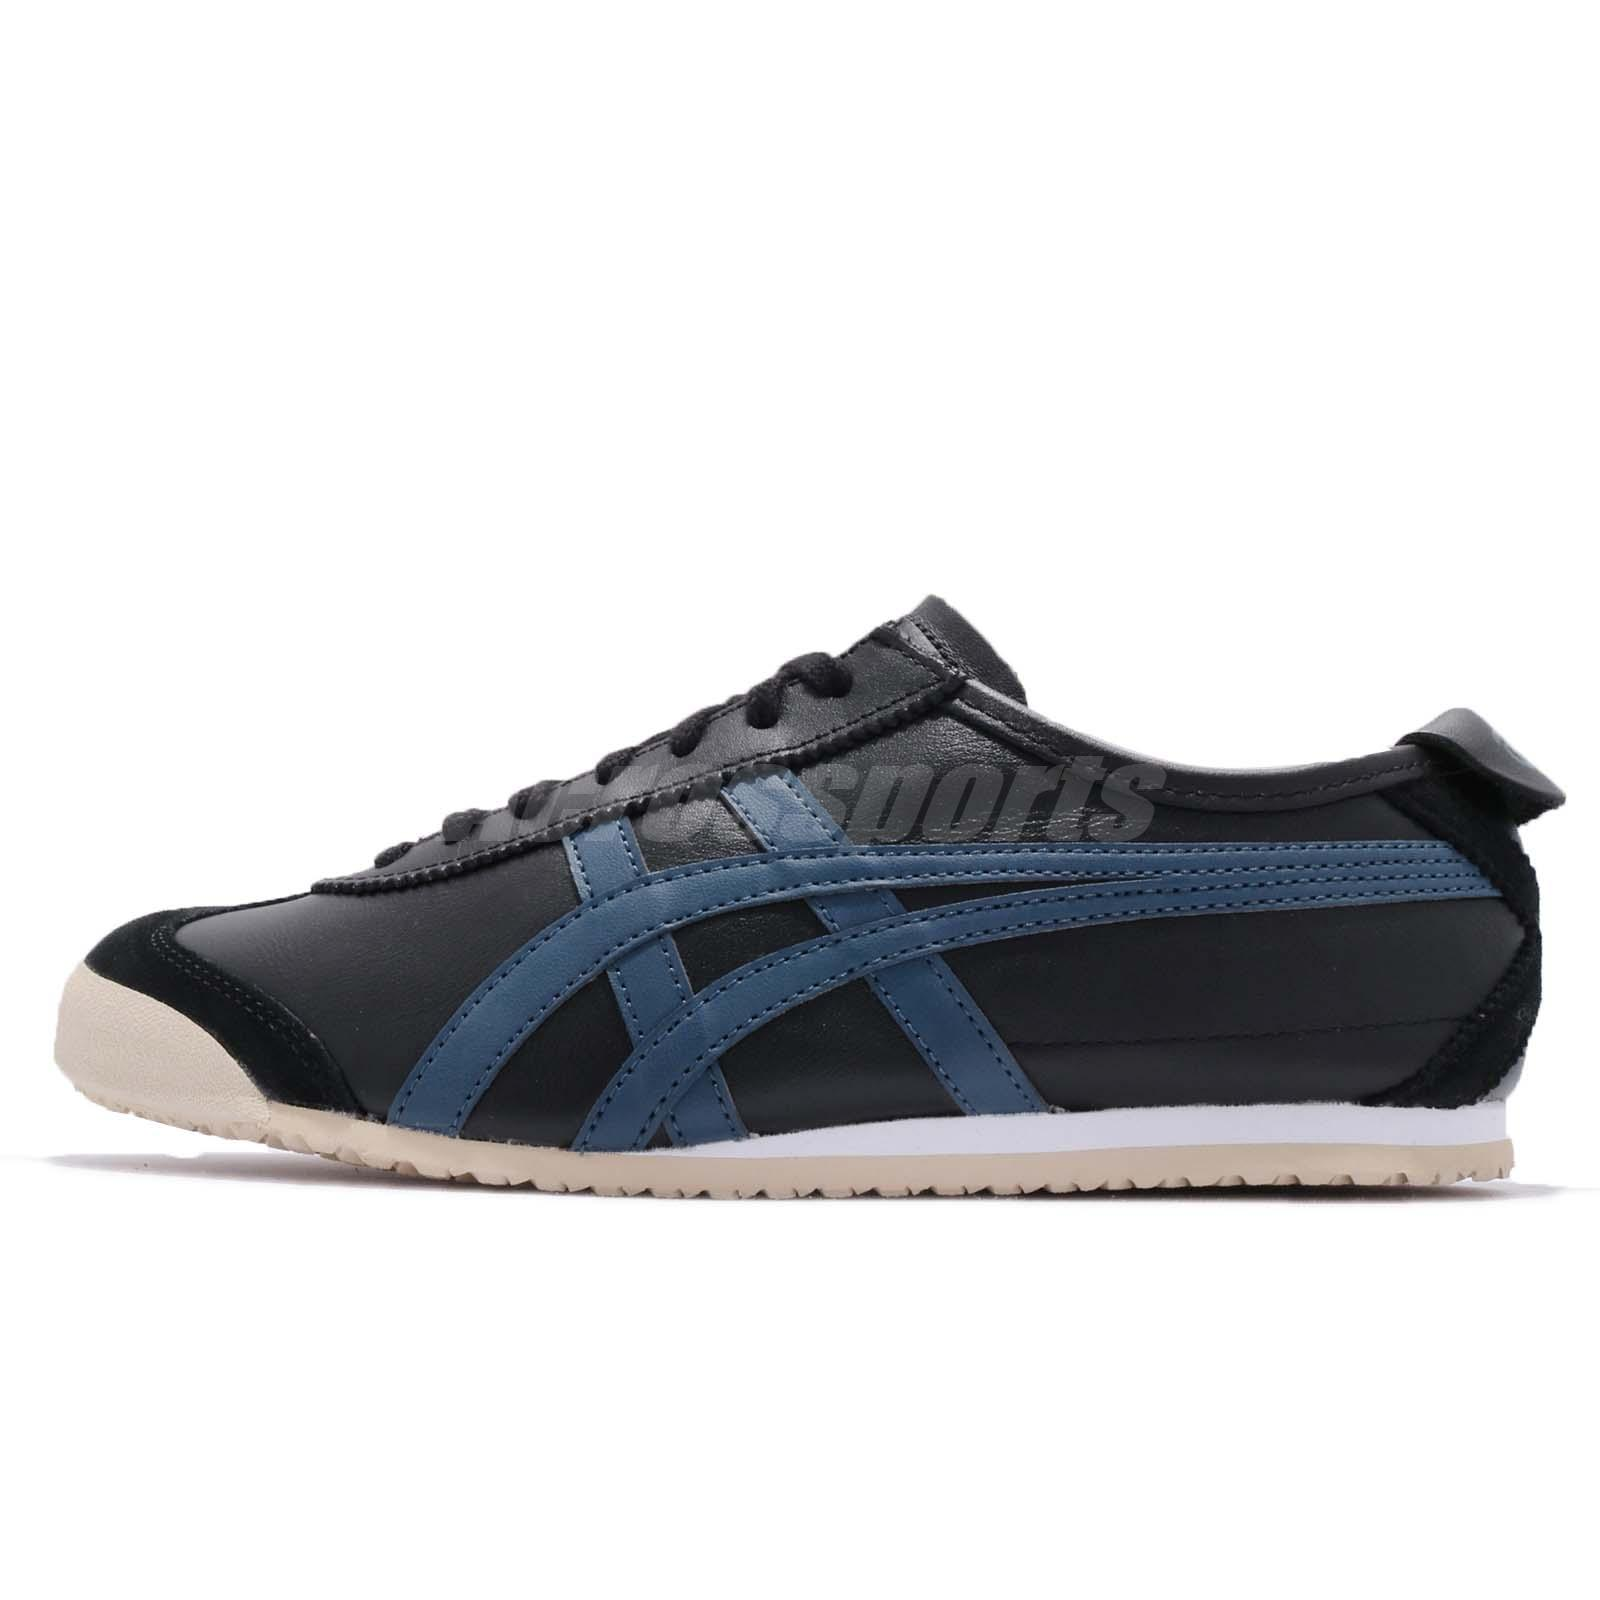 Asics Onitsuka Tiger Mexico 66 Black Blue Men Running Shoes Sneakers D4J2L 9058